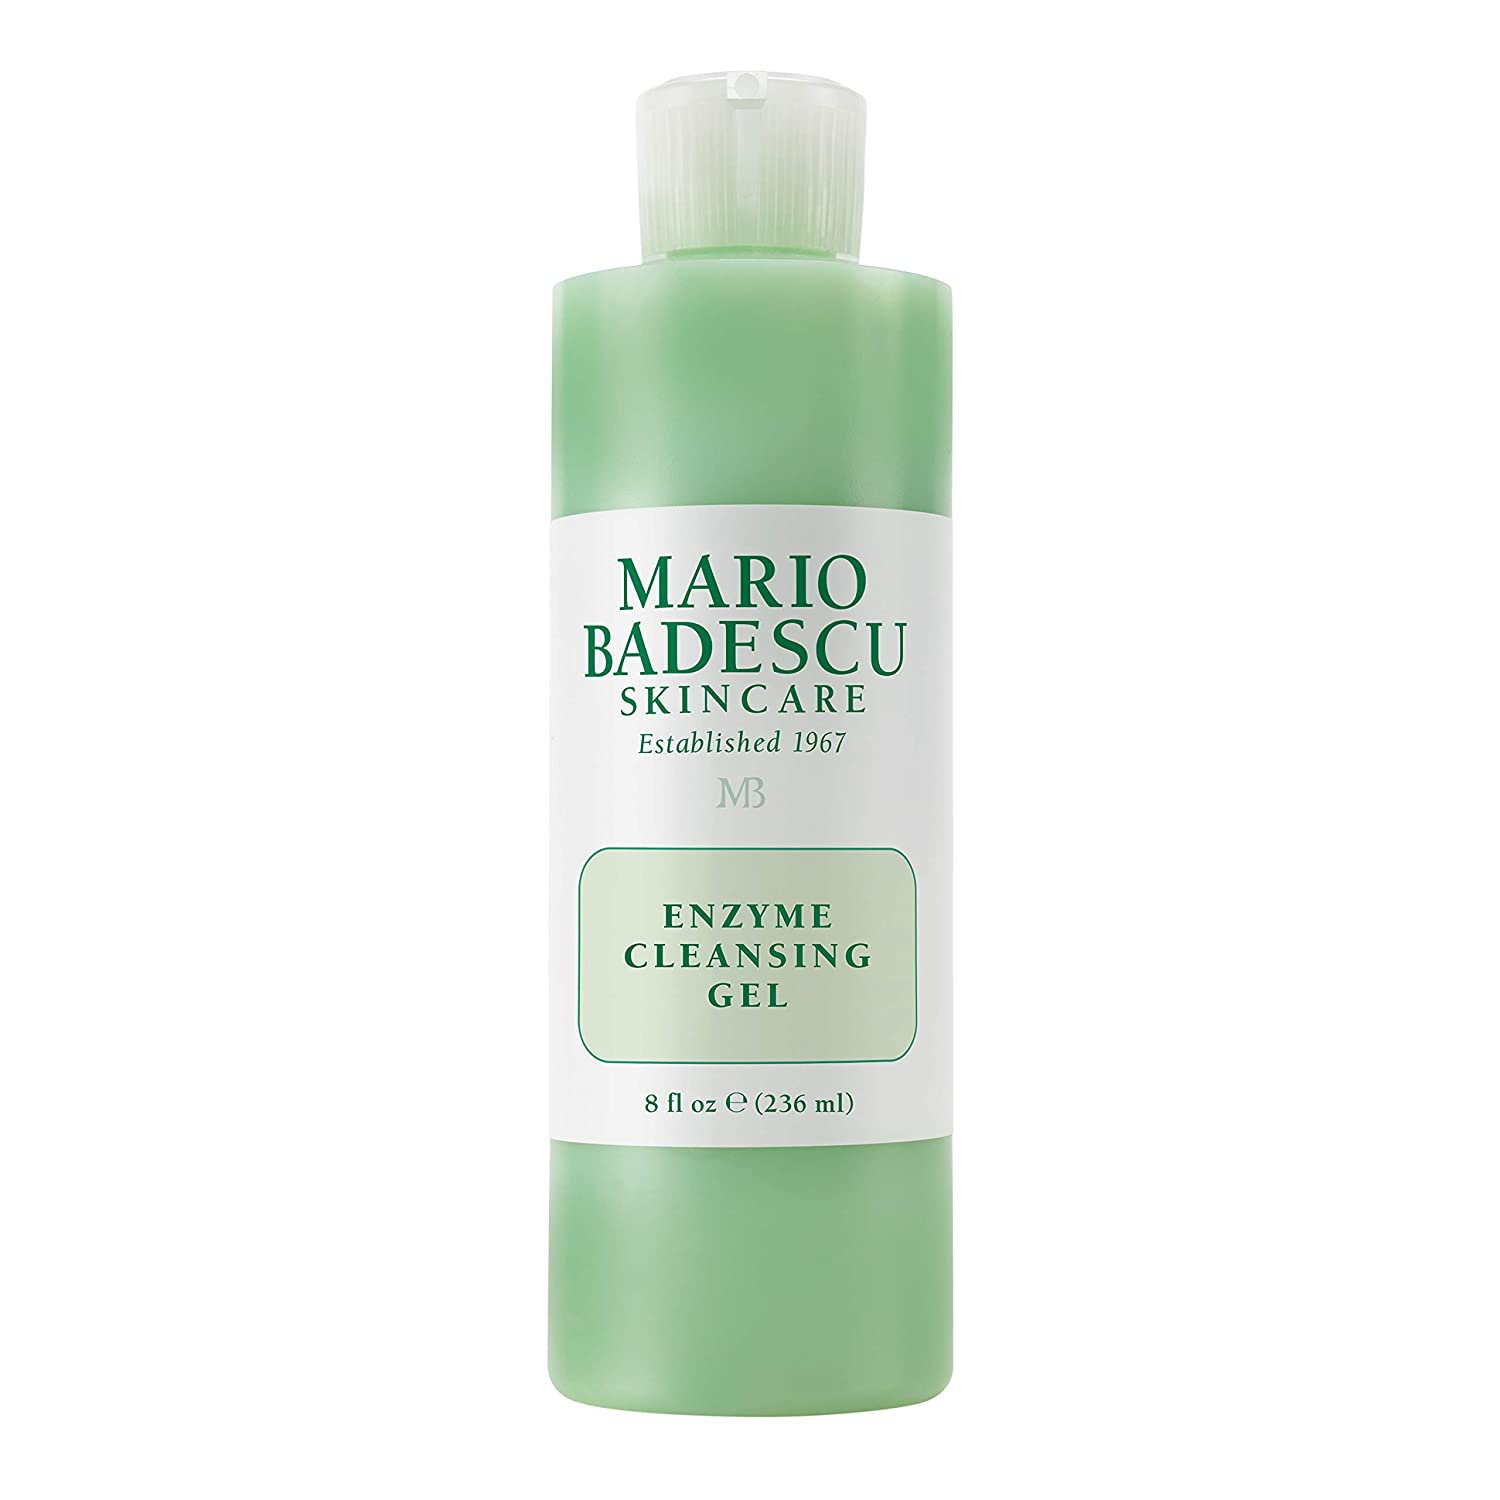 Mario Badescu Enzyme Cleansing Gel, 8 Fl Oz: Premium Beauty